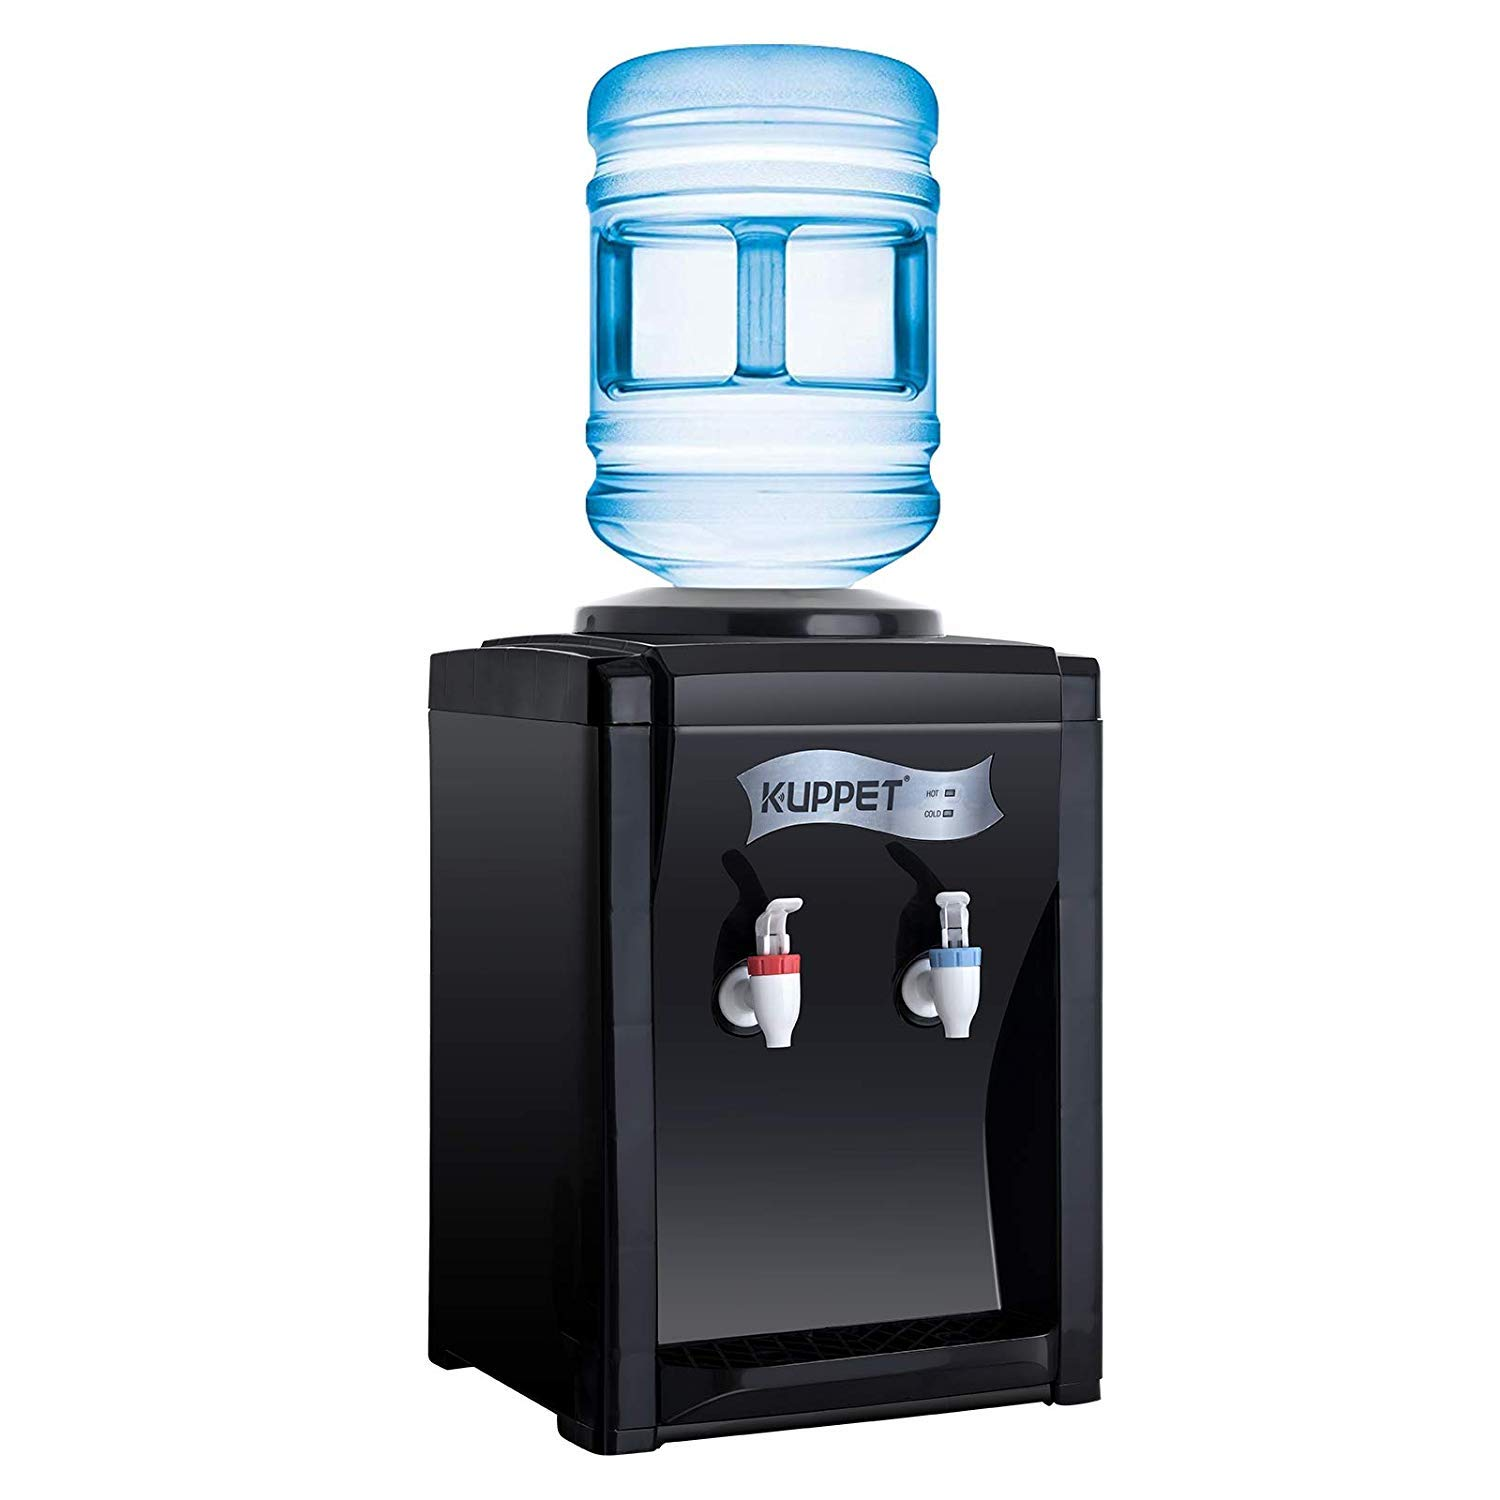 KUPPET Countertop Water Cooler Dispenser-3-5 Gallon Hot & Cold Water, ideal For Home Office Use, (17'', Black) by KUPPET